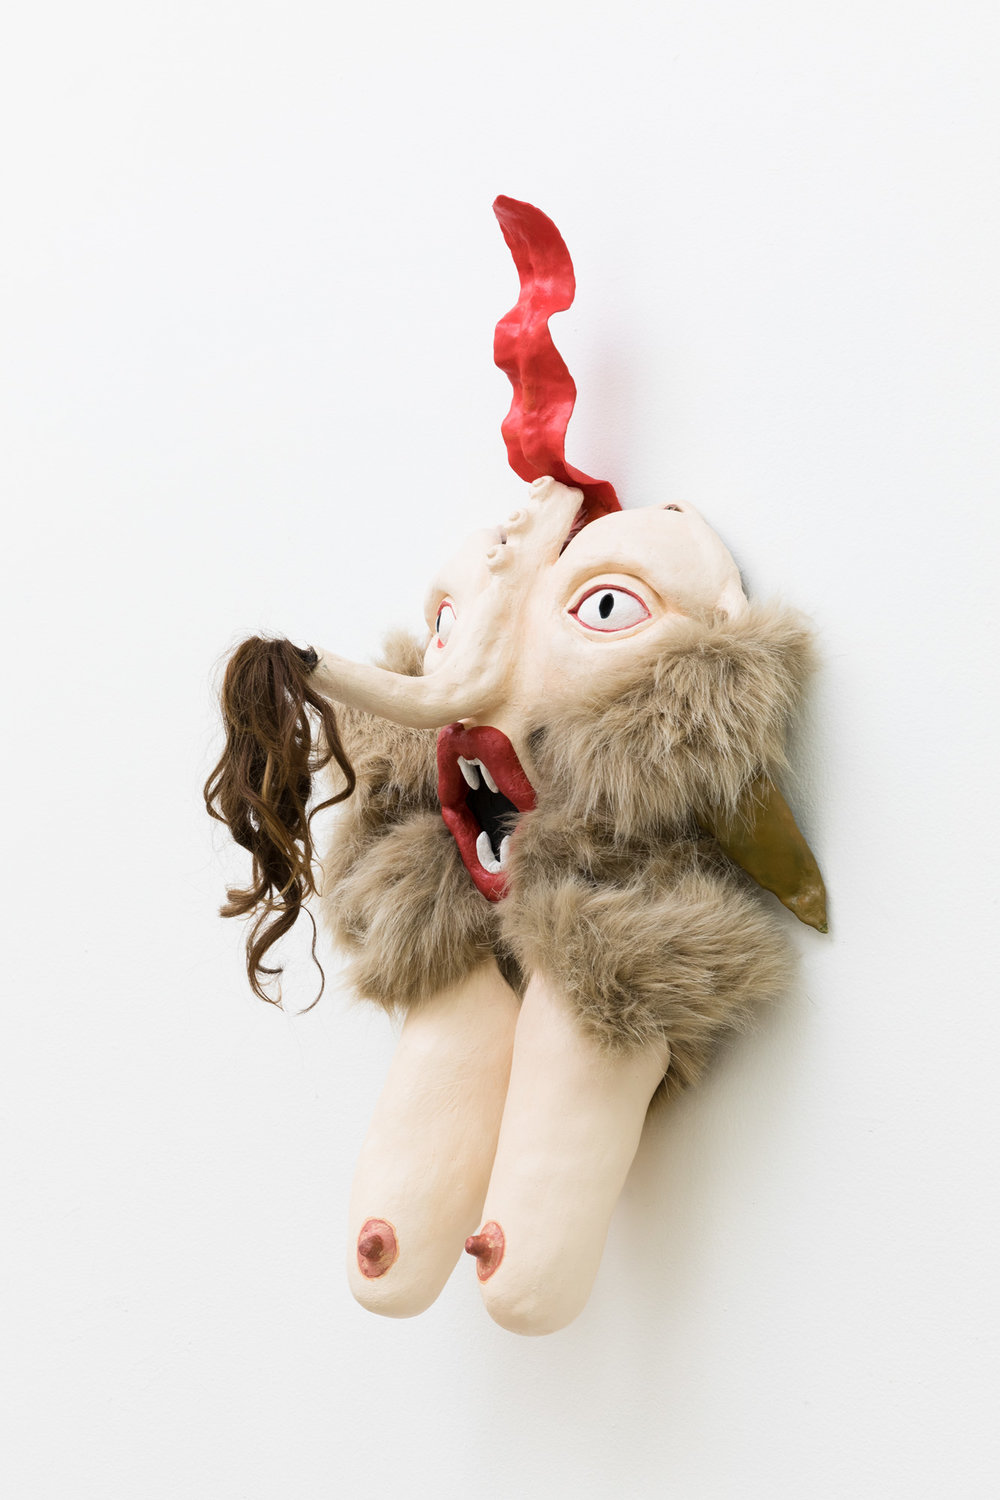 She Devil 2018 hand built ceramic, oil paint, fake fur, human hair, polymer clay, acrylic paint